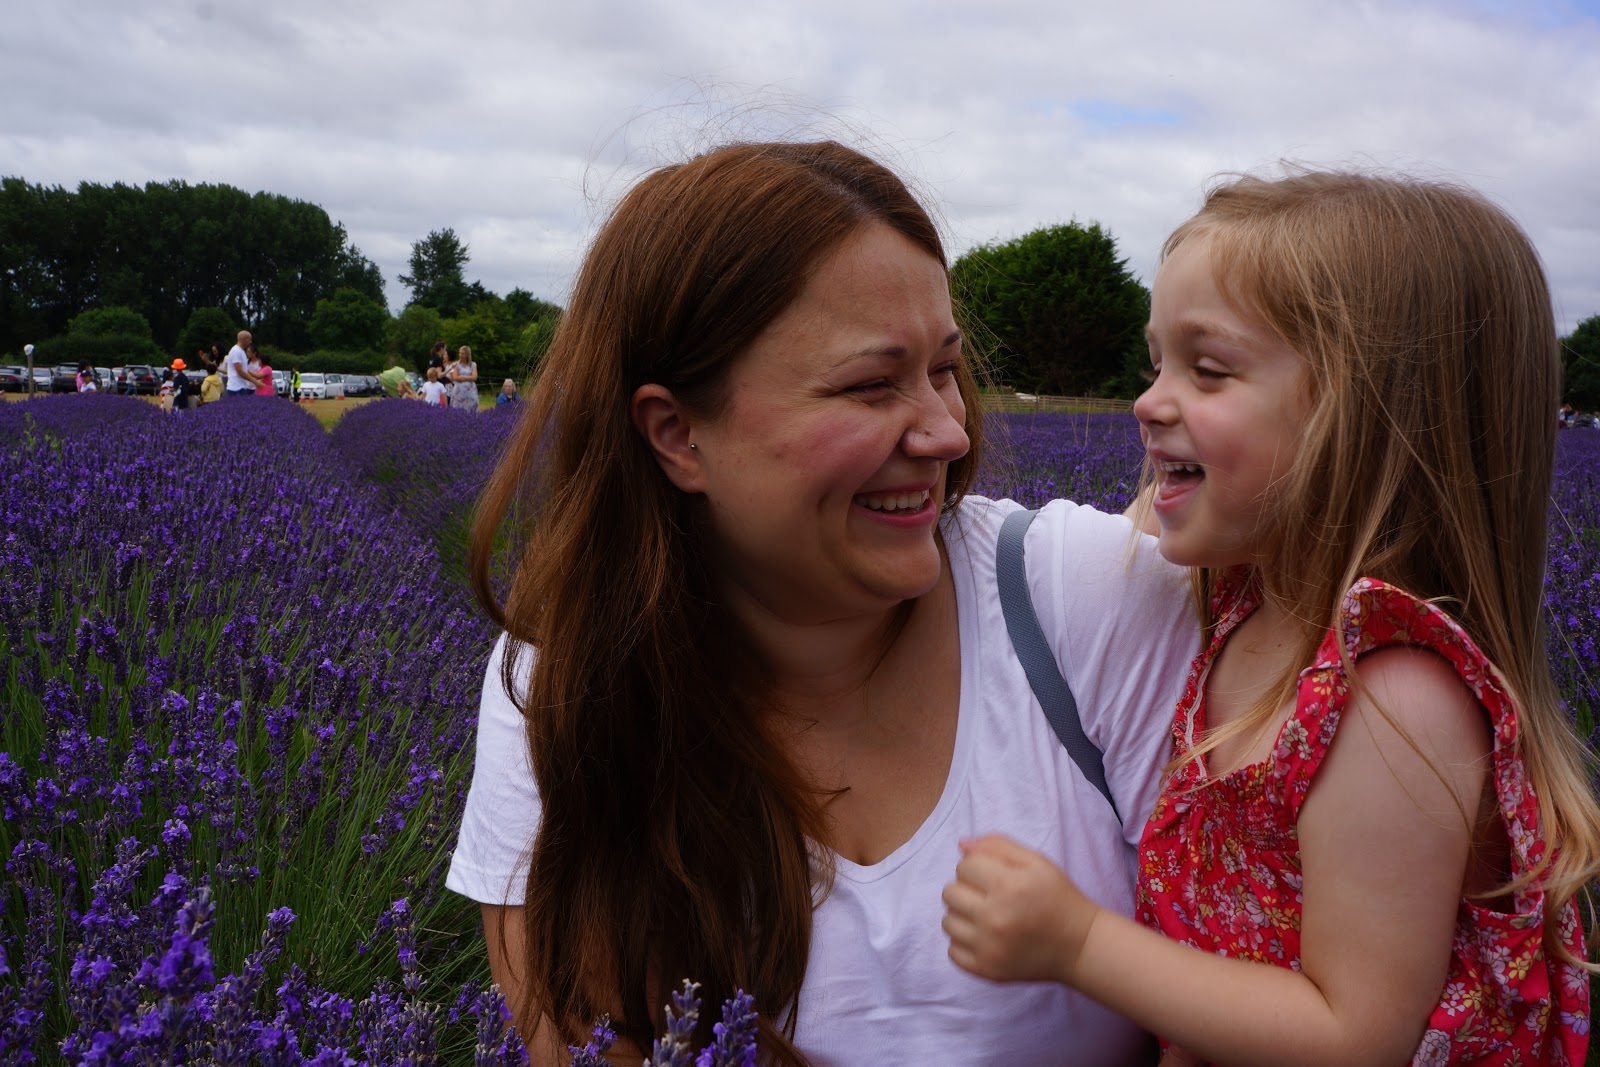 mum and daughter laughing at a lavender field